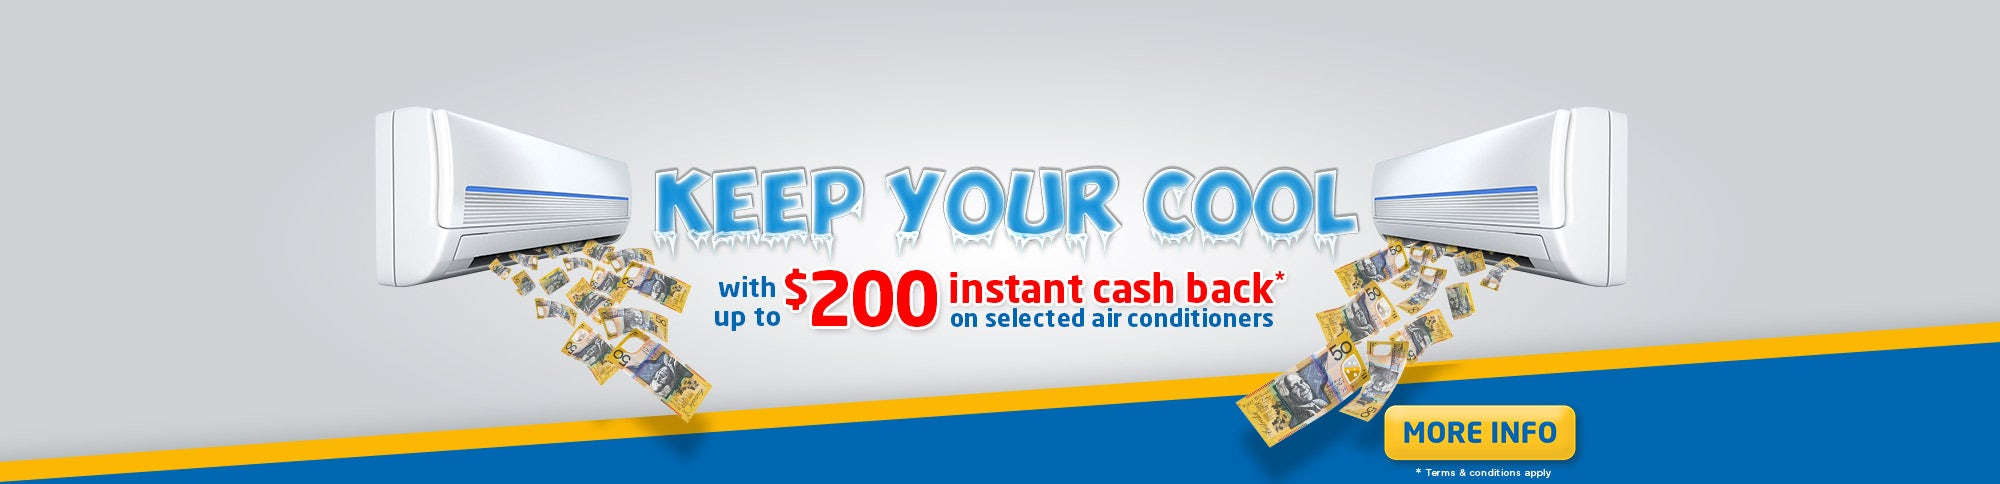 Keep Your Cool Air Con Cashback